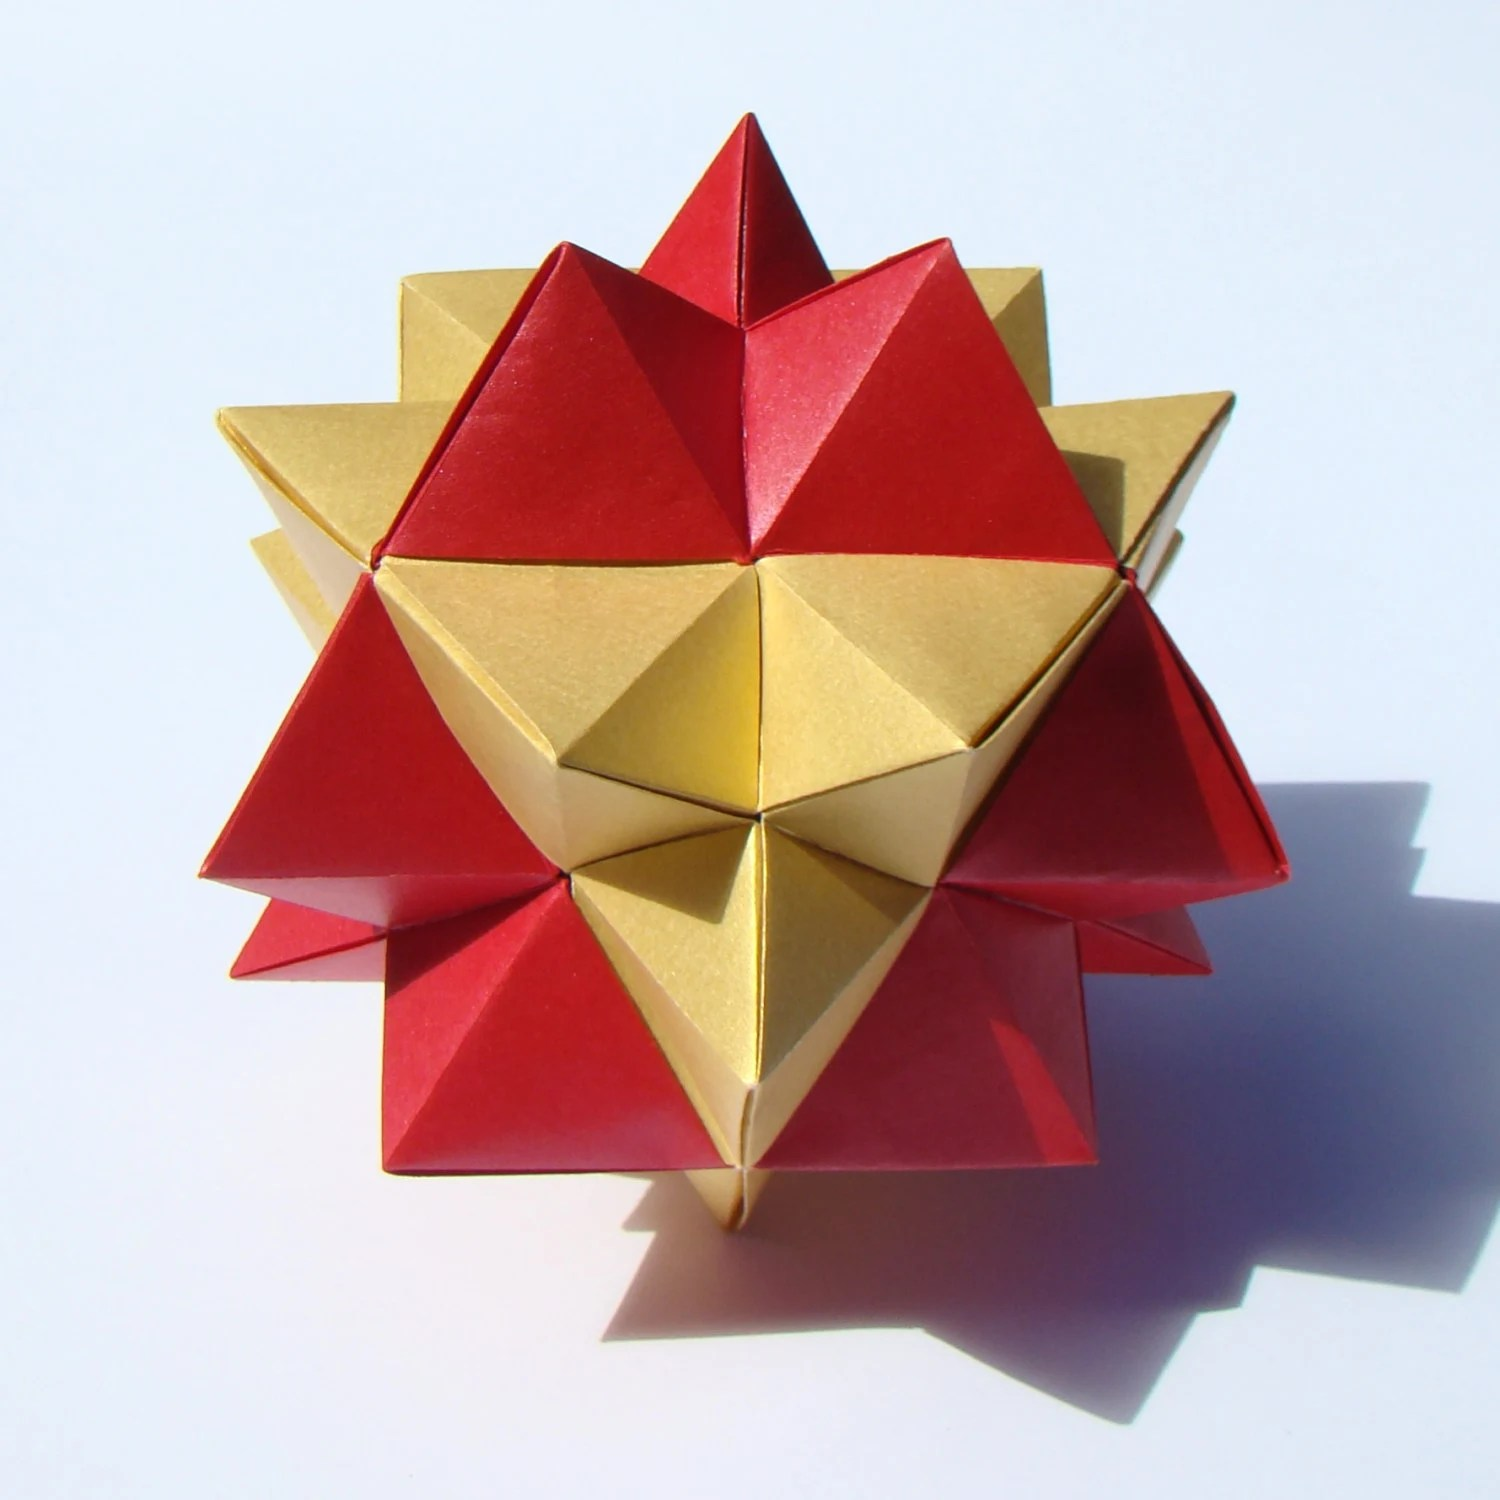 cool modular origami diagram rib relay wiring diagrams second stellation of the cuboctahedron etsy image 0